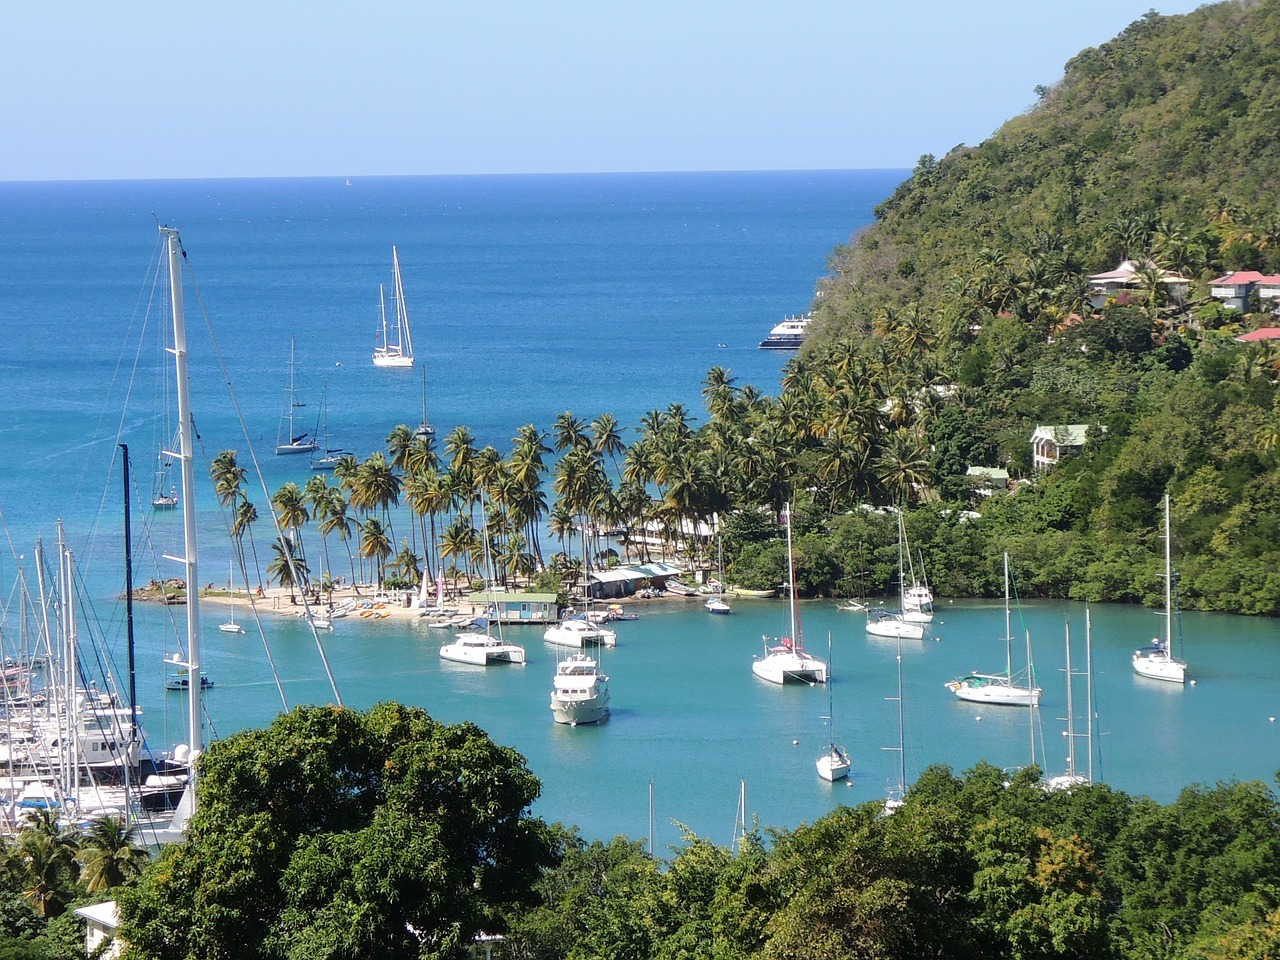 st-lucia-106119_1280